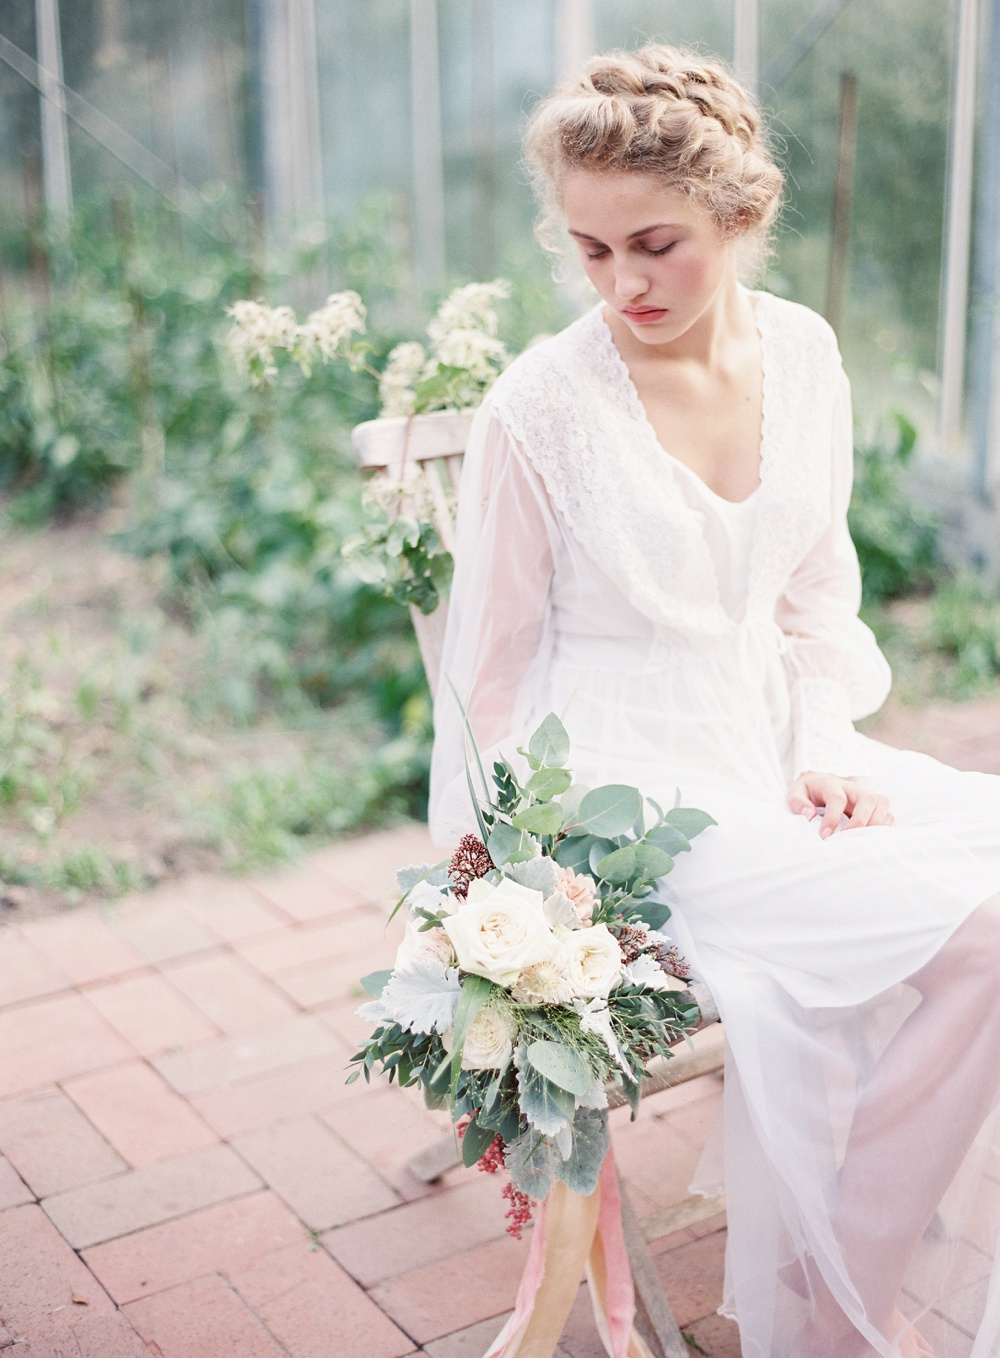 Greenhouse_wedding_inspiration©MadalinaSheldon_0019.jpg